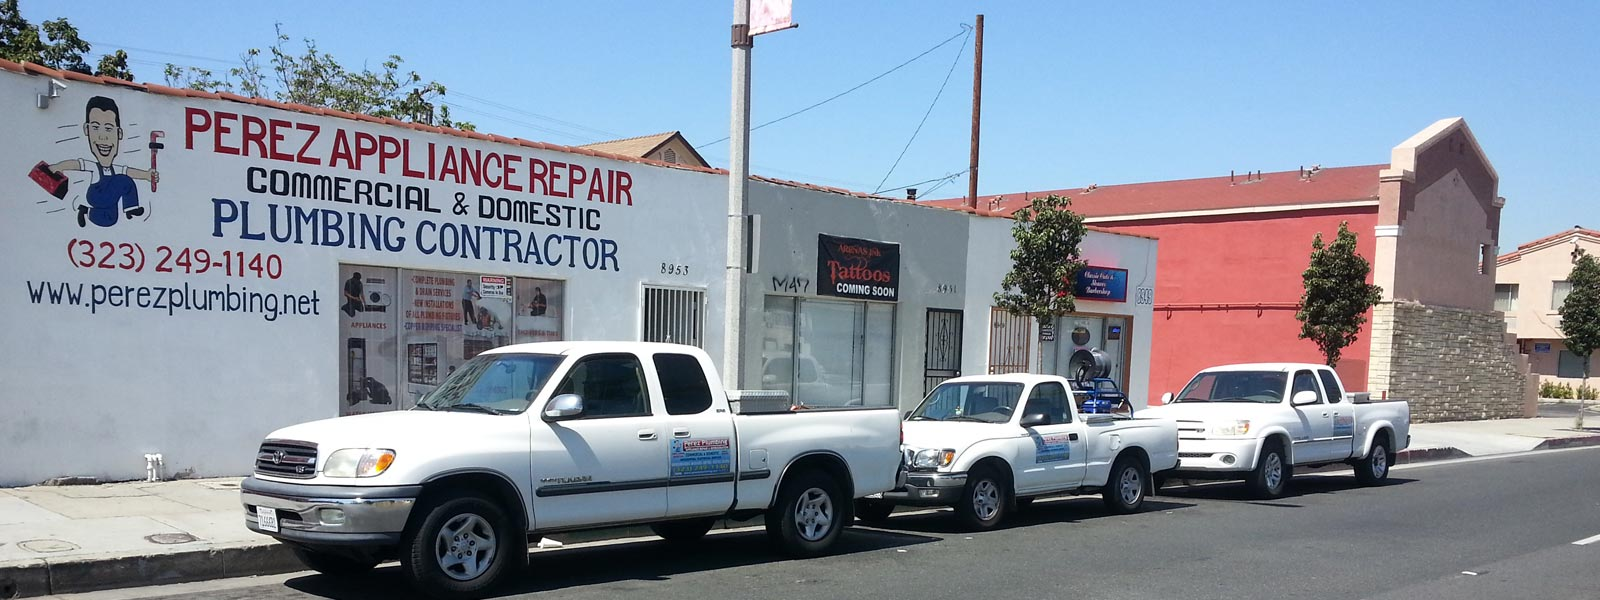 Plumbing in Los Angeles, South Gate, Maywood, Downey, Lakewood